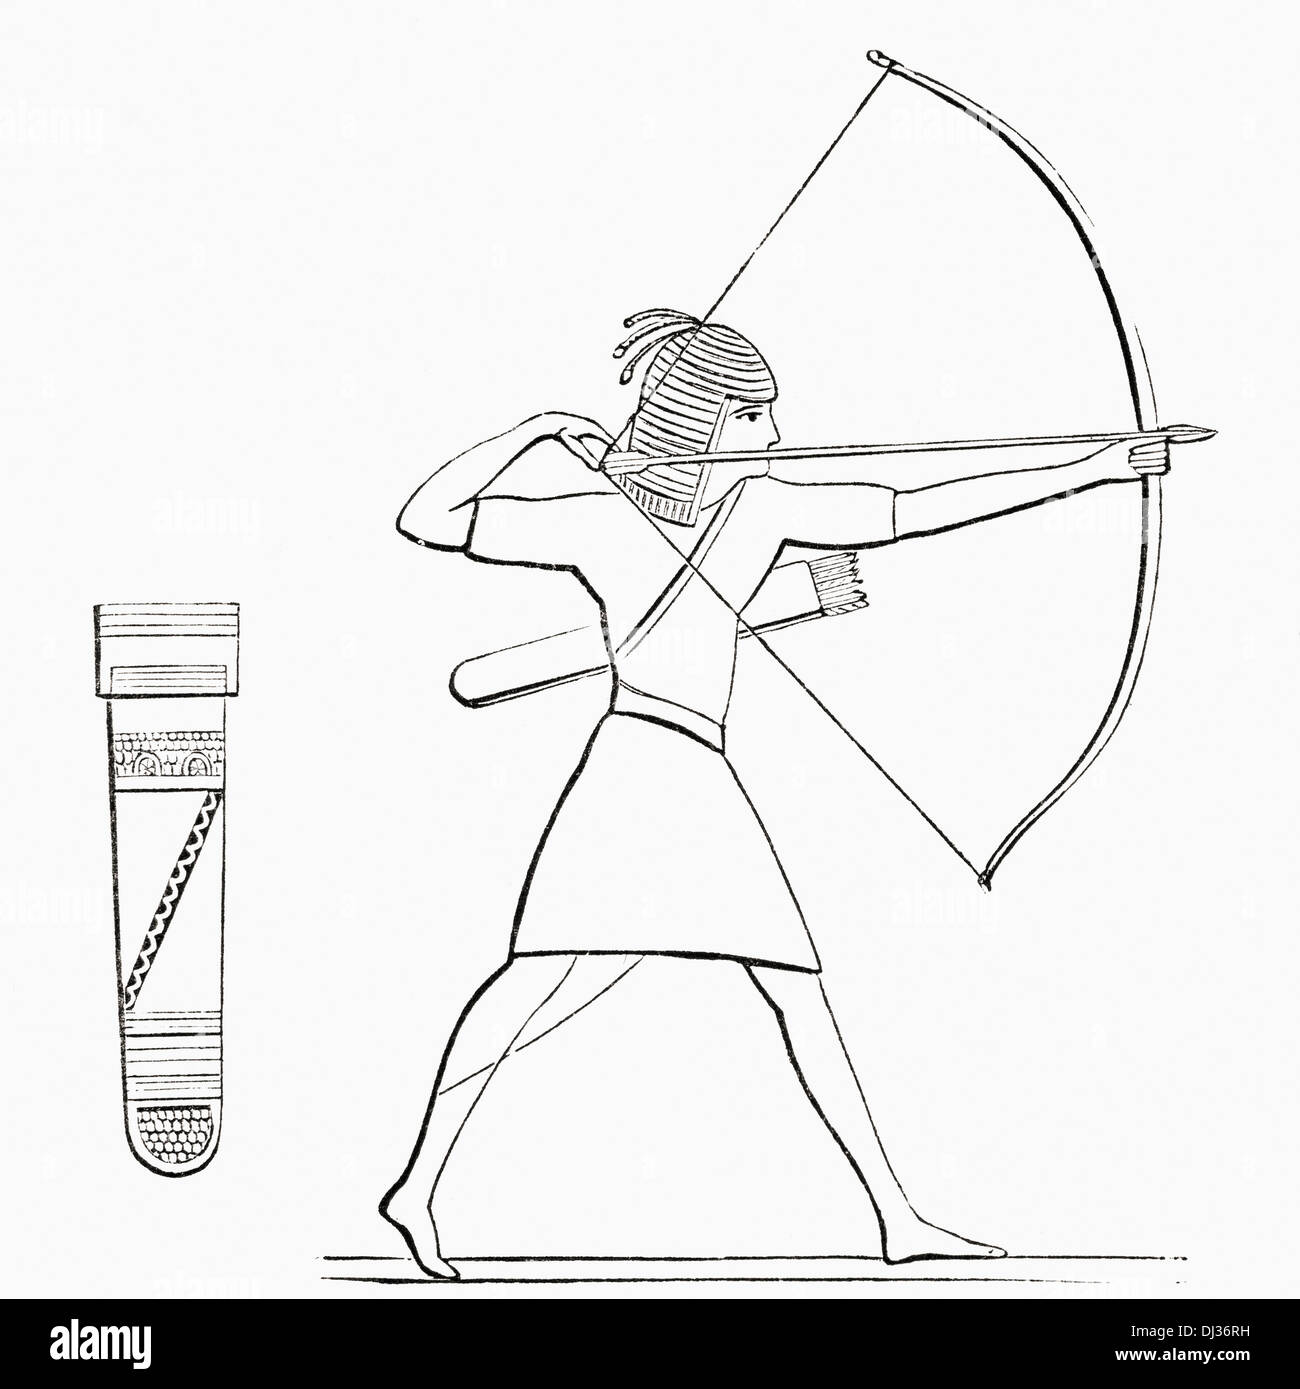 ancient bow and arrow egypt stock photos ancient bow and arrow 13 Century English Armor egyptian archer and quiver stock image